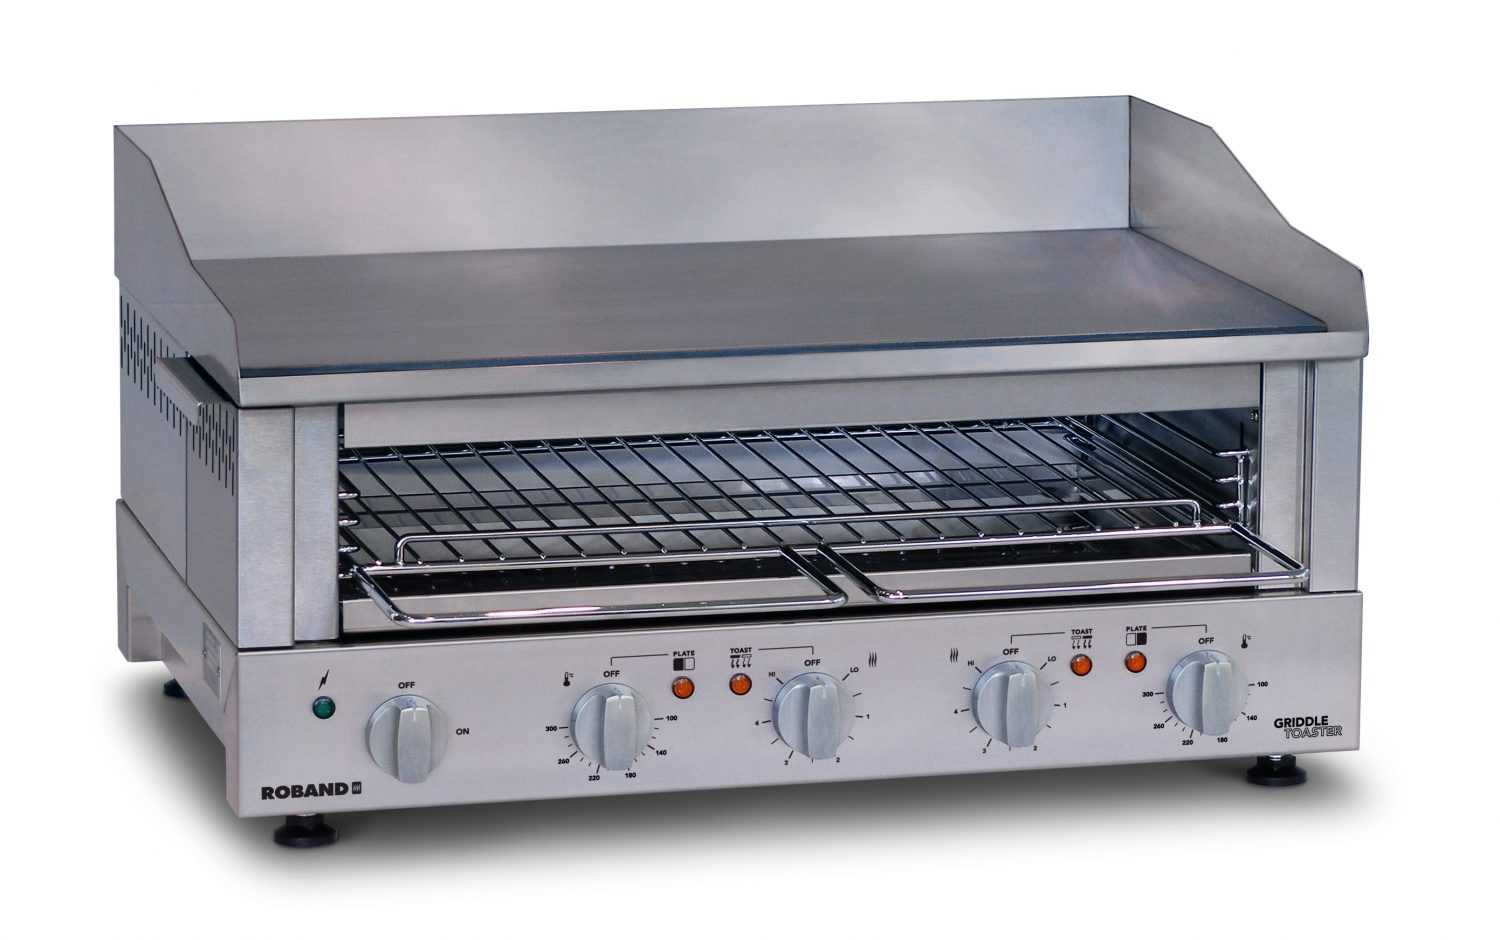 Roband GT700 Griddle Toaster - Very High Production